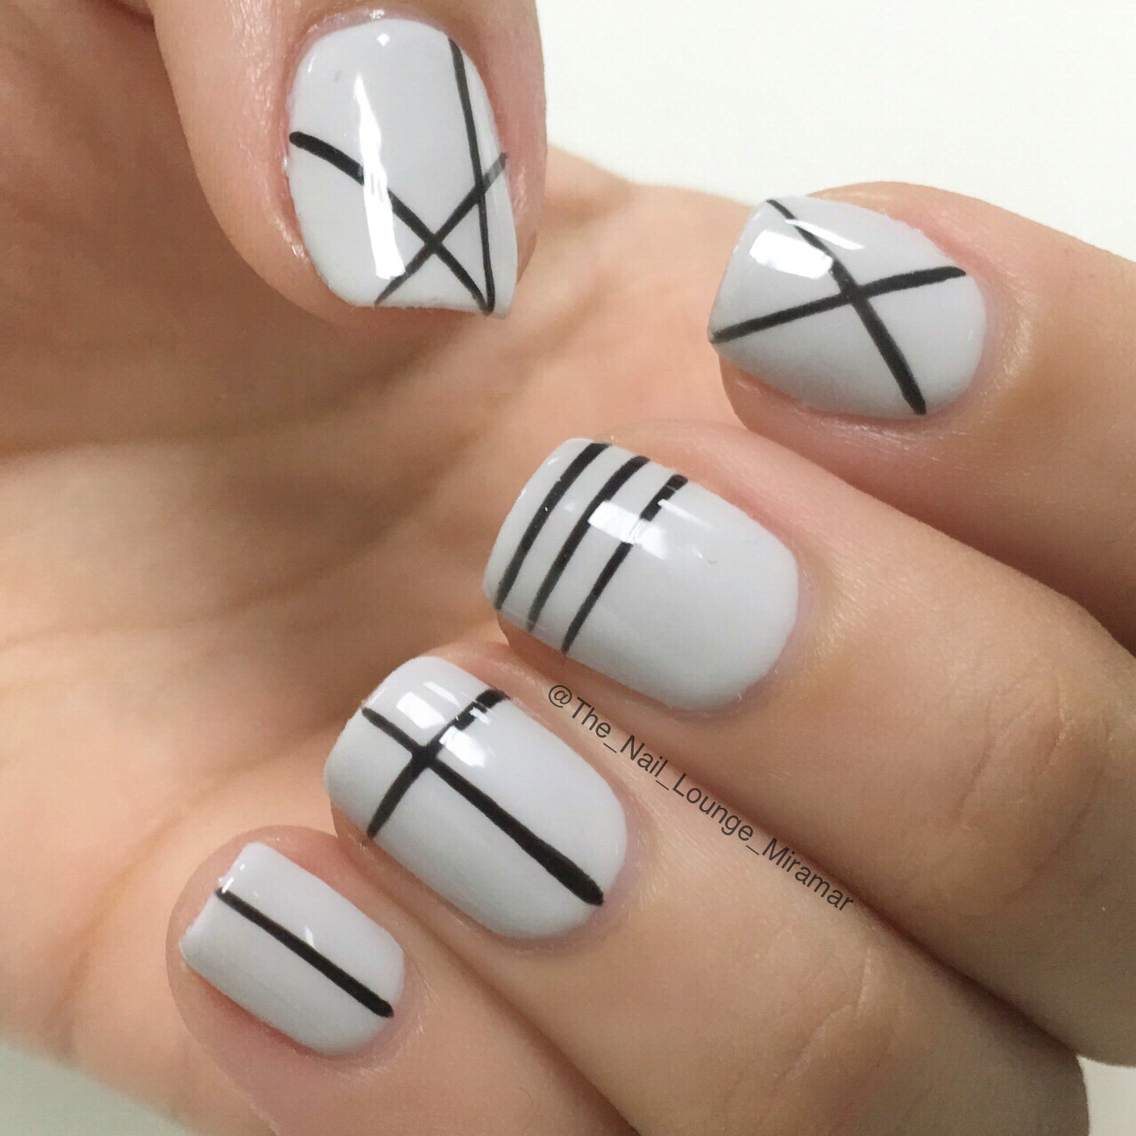 Easy Nail Designs: 30 Cool Nail Art Ideas For 2018